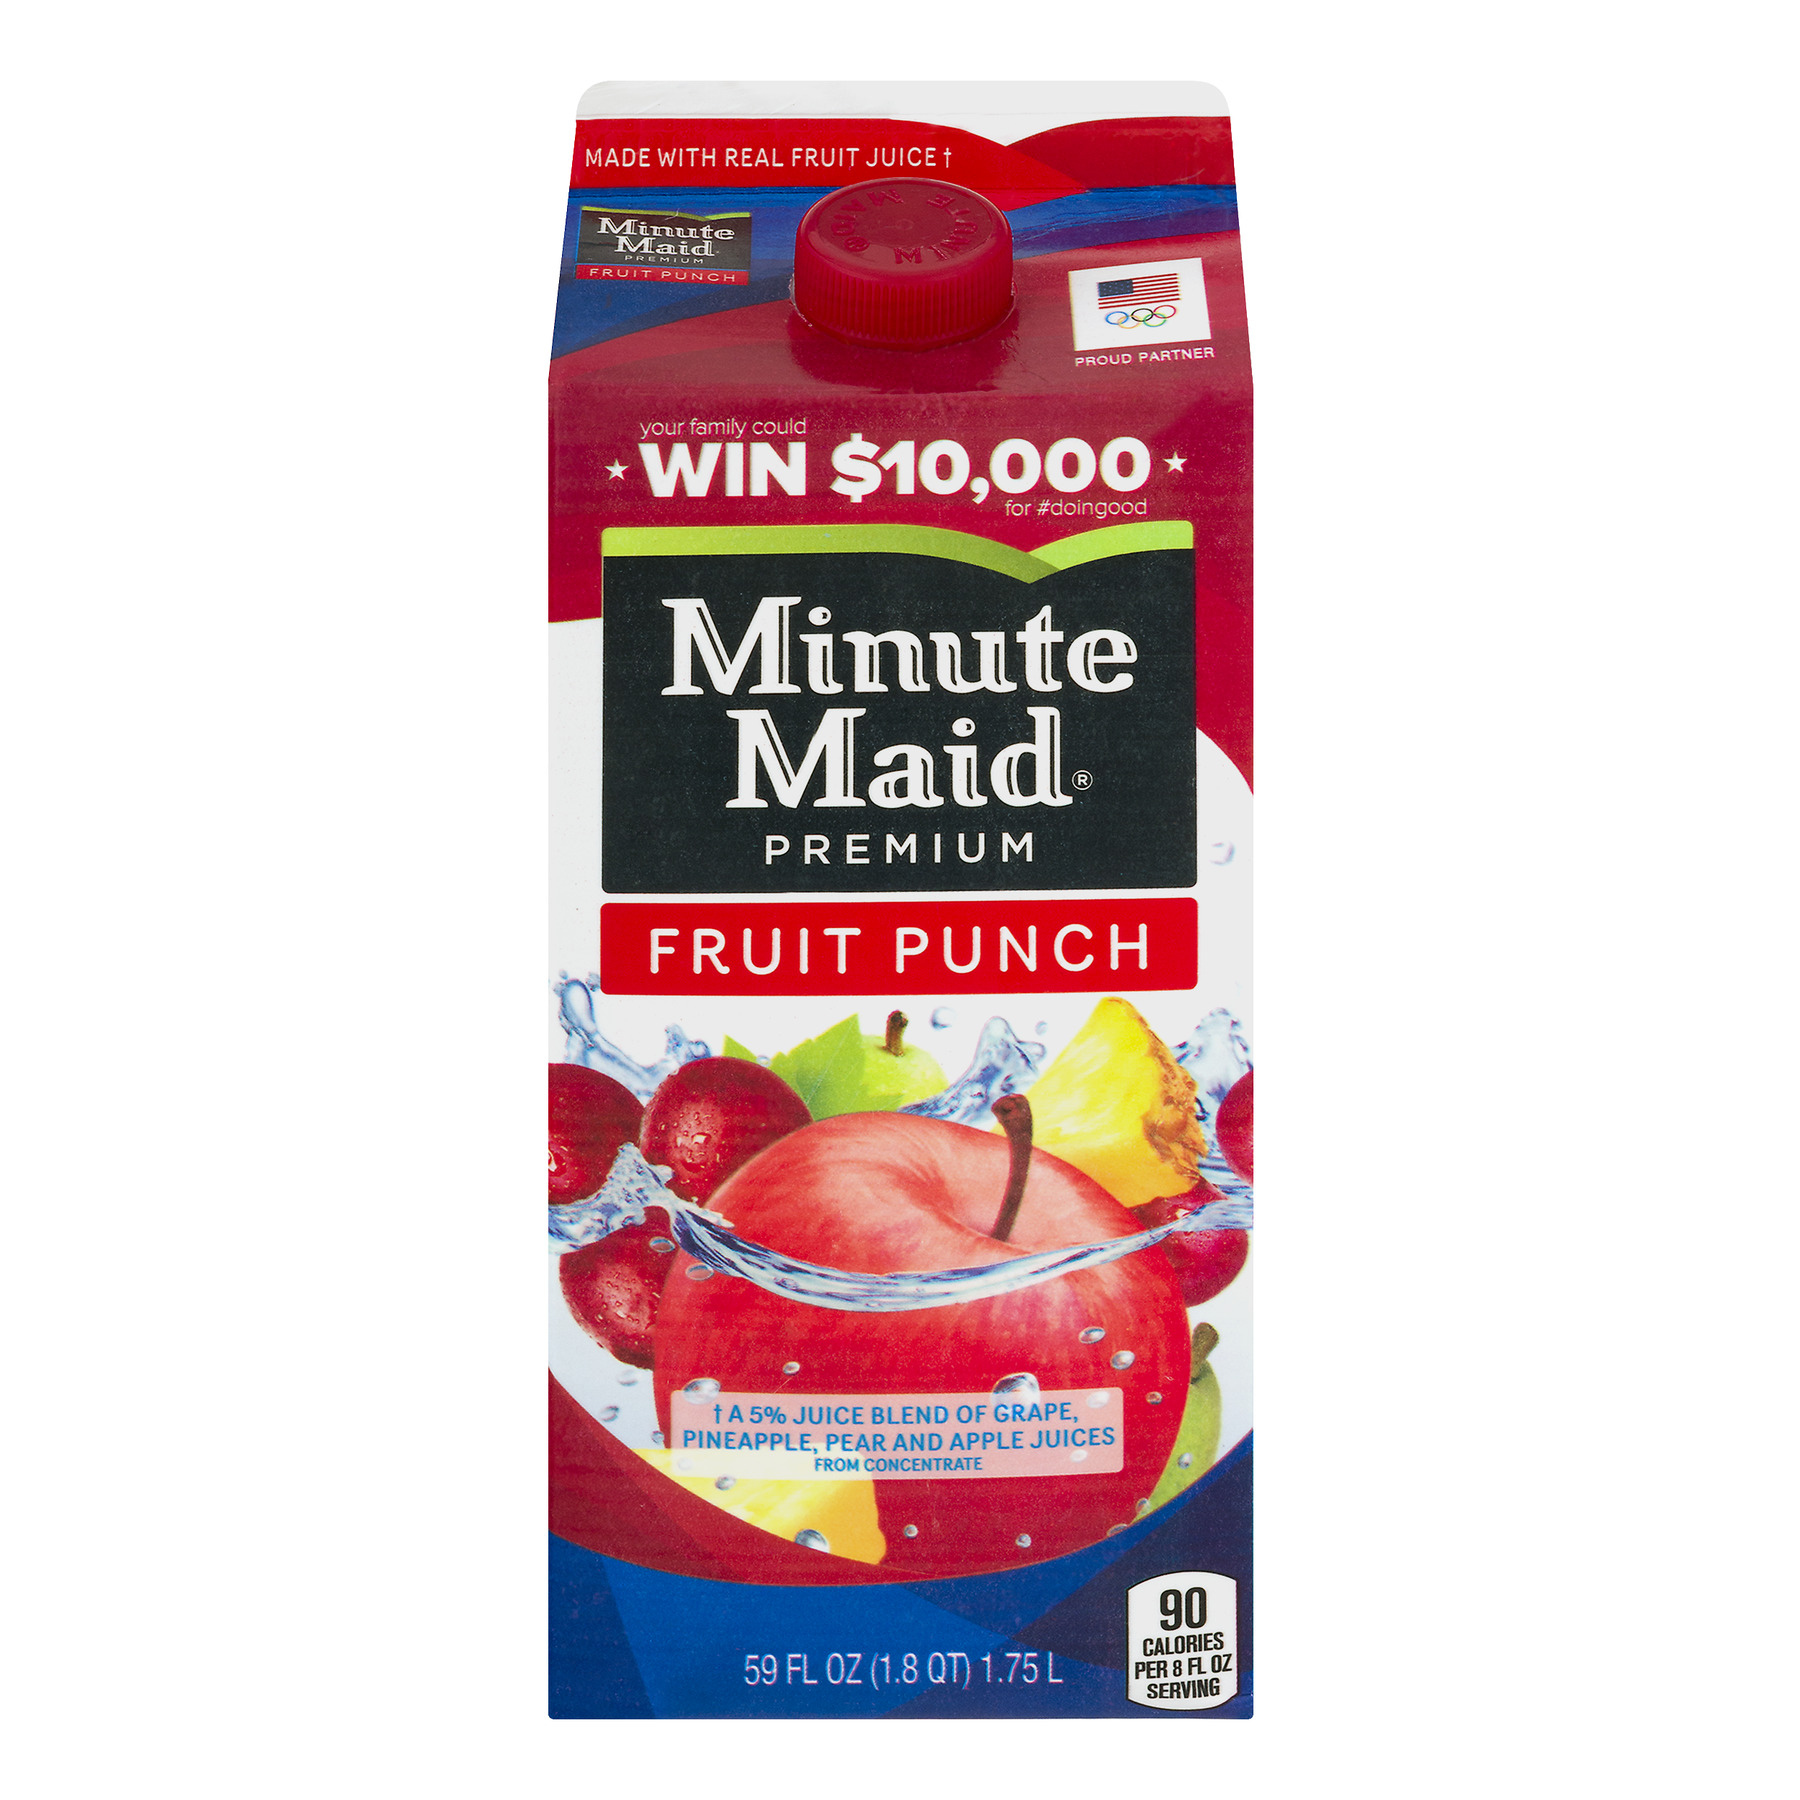 Minute Maid Premium Fruit Punch, 59.0 FL OZ